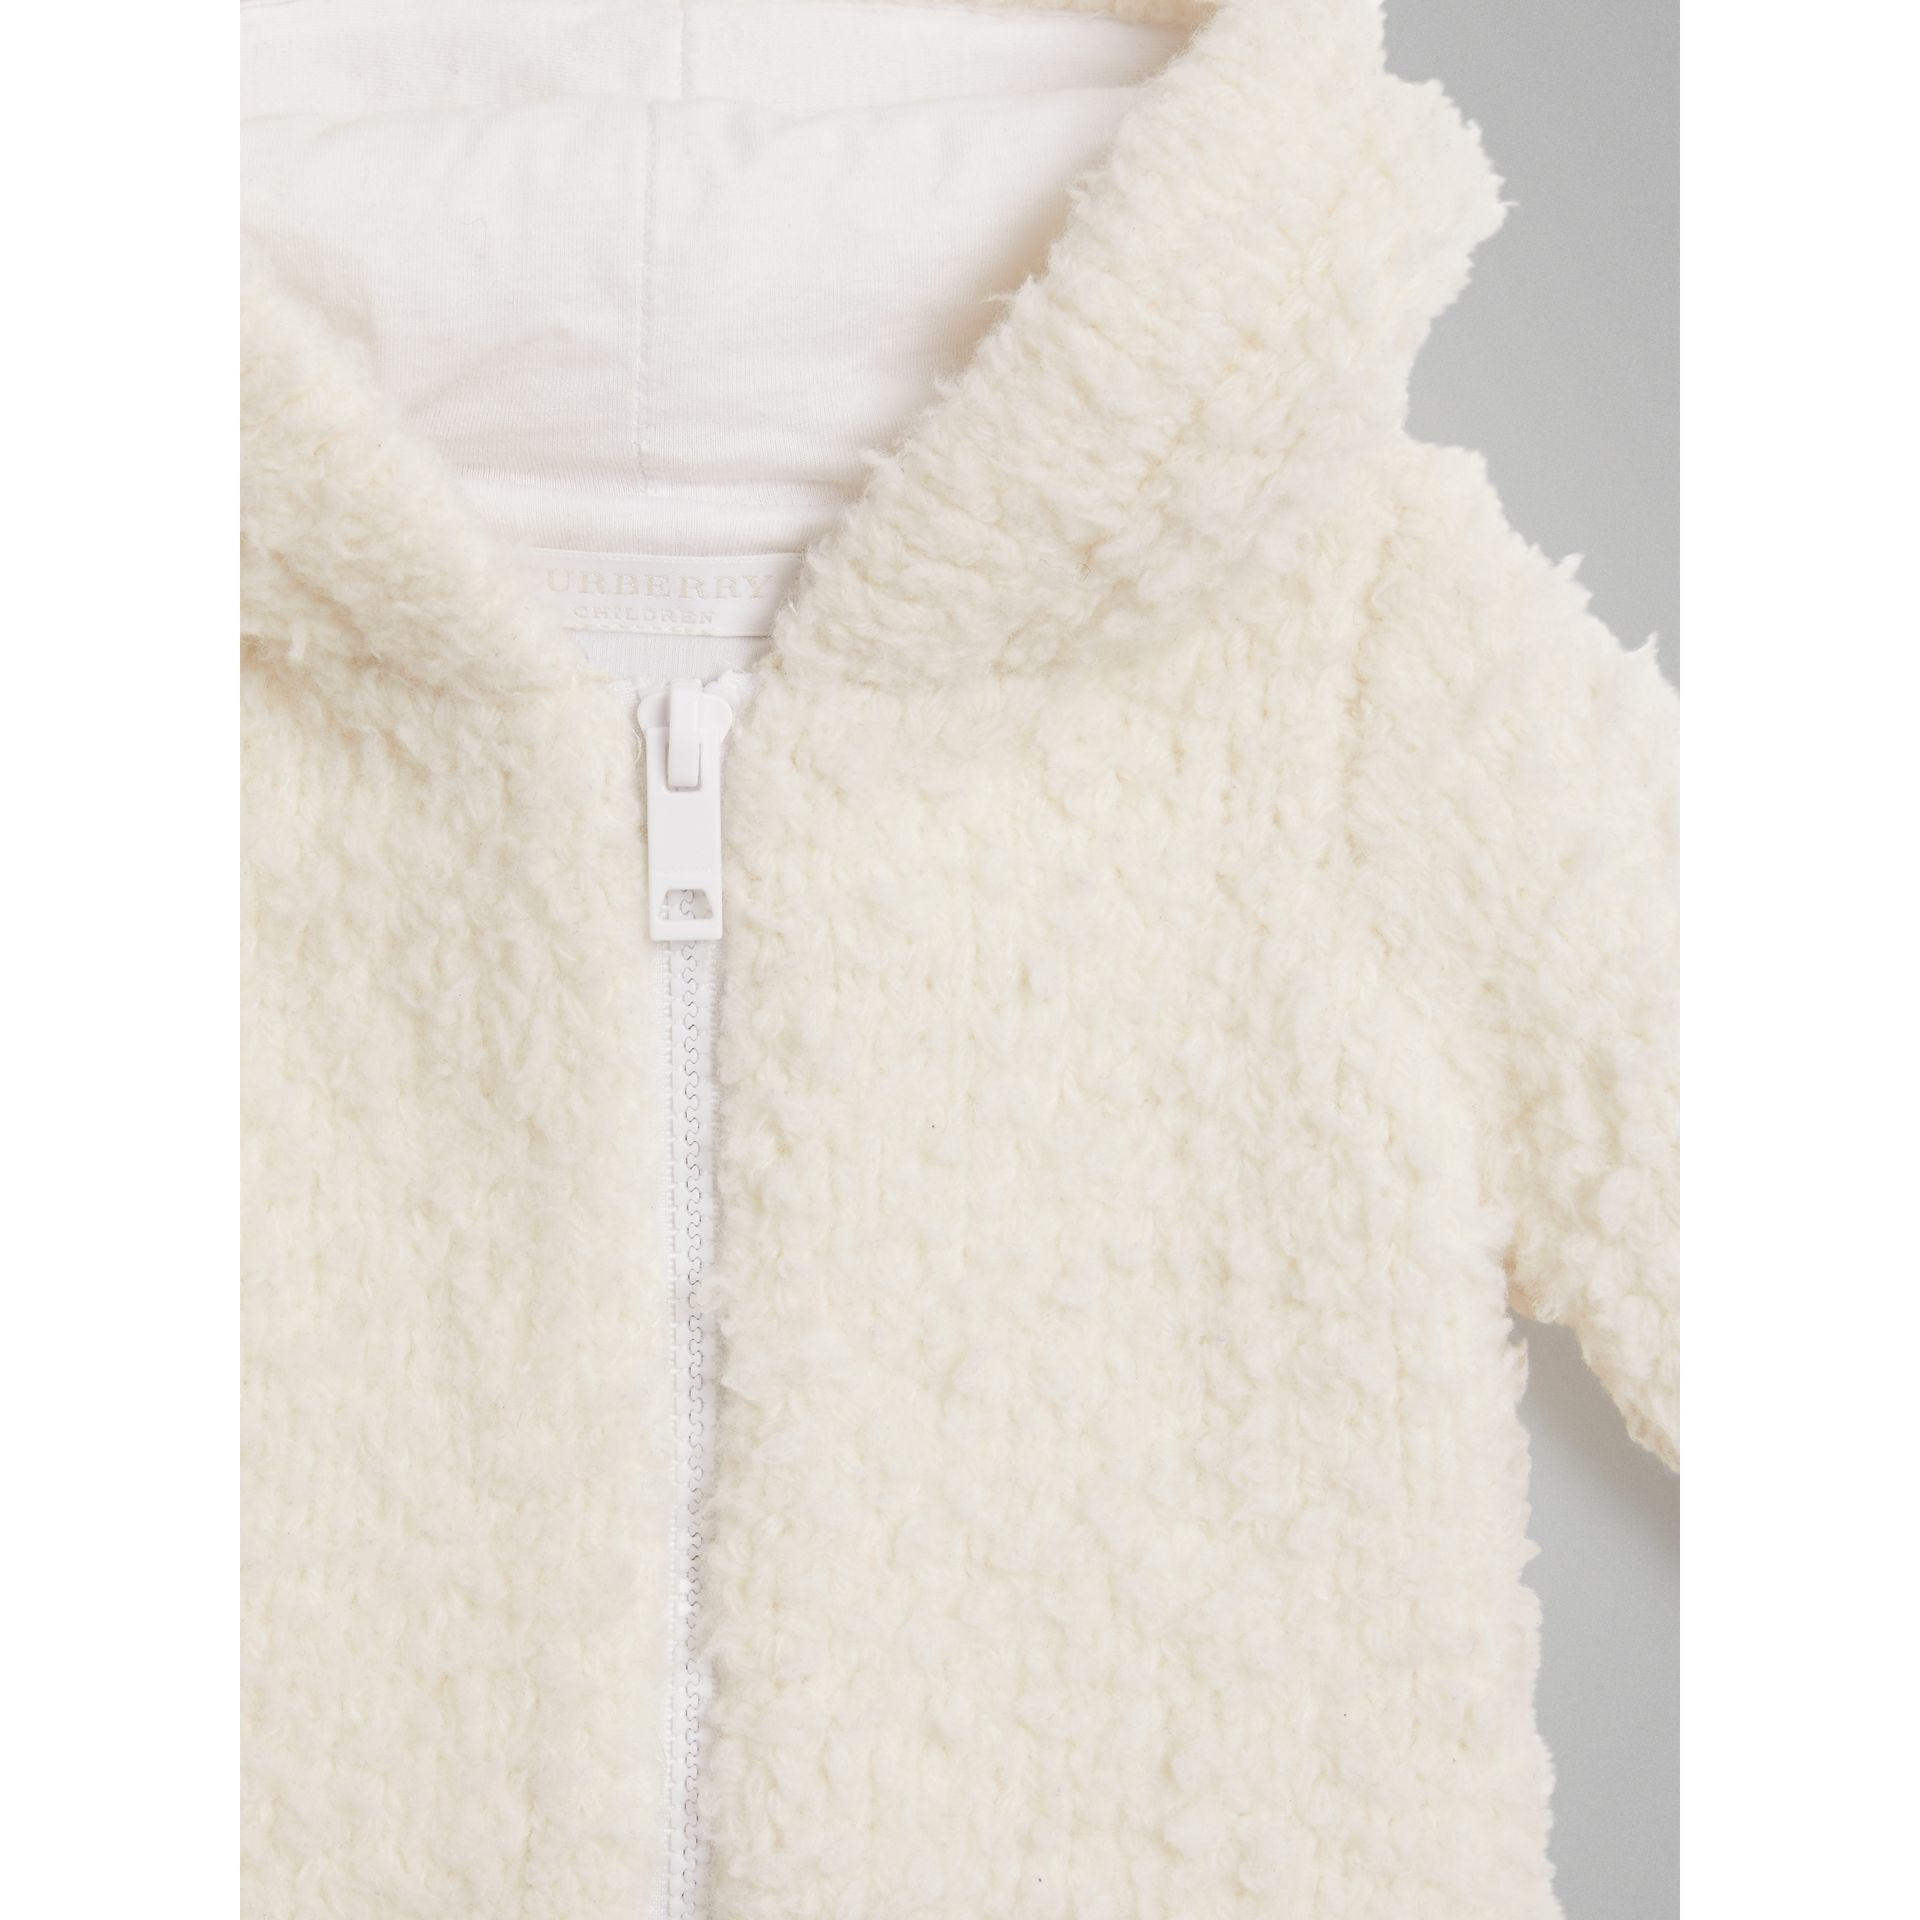 Wool Blend Hooded Top in Ivory - Children | Burberry - gallery image 4